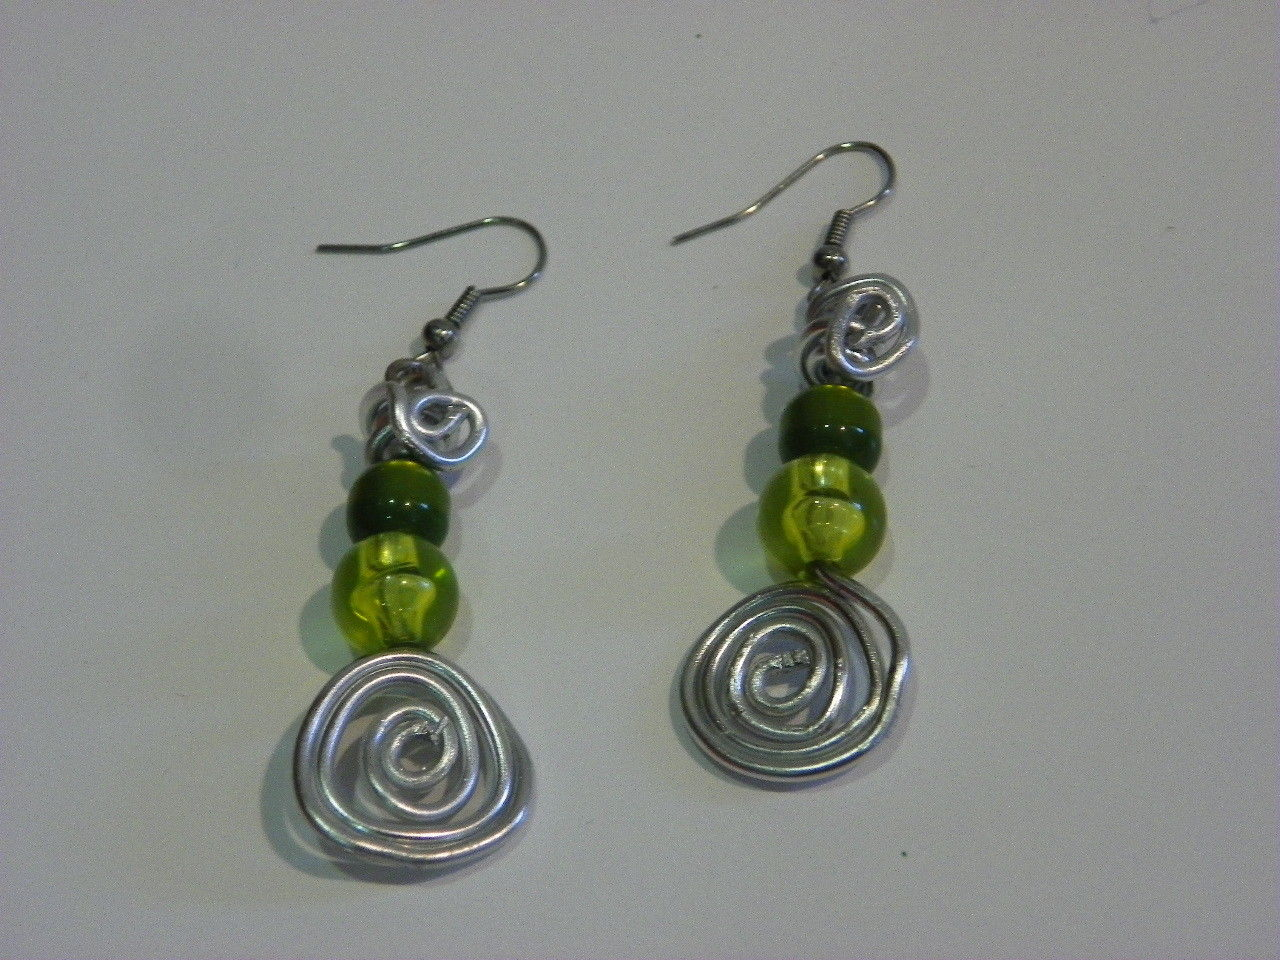 54b8fa5a8d3 Fine earrings green elegant 100% handmade by Cecile French design woman  girl jewelry